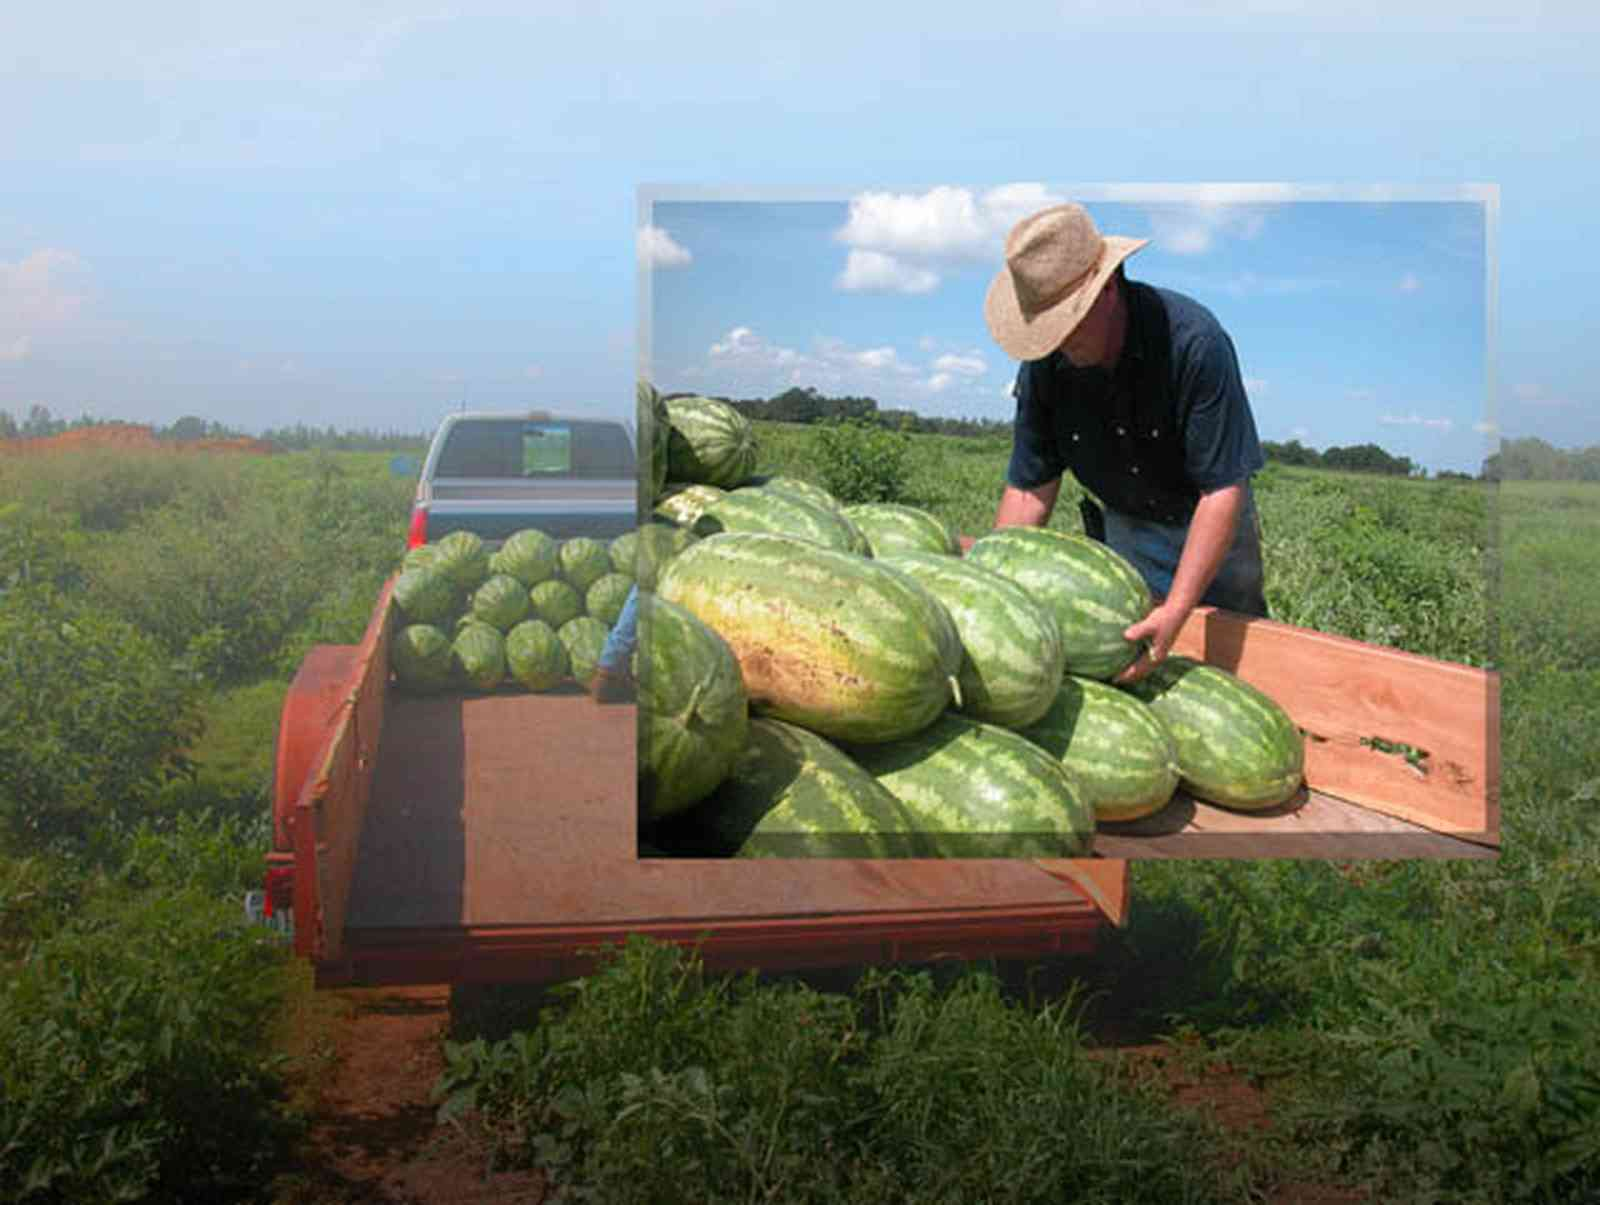 Hollandtown:-Holland-Farm:-Sales_20.jpg:  watermelons, royal star watermelon, starbright watermelon, farm, straw hat, row crops, field, cultivation, truck, trailer, pick-up truck, melon, farmer ,